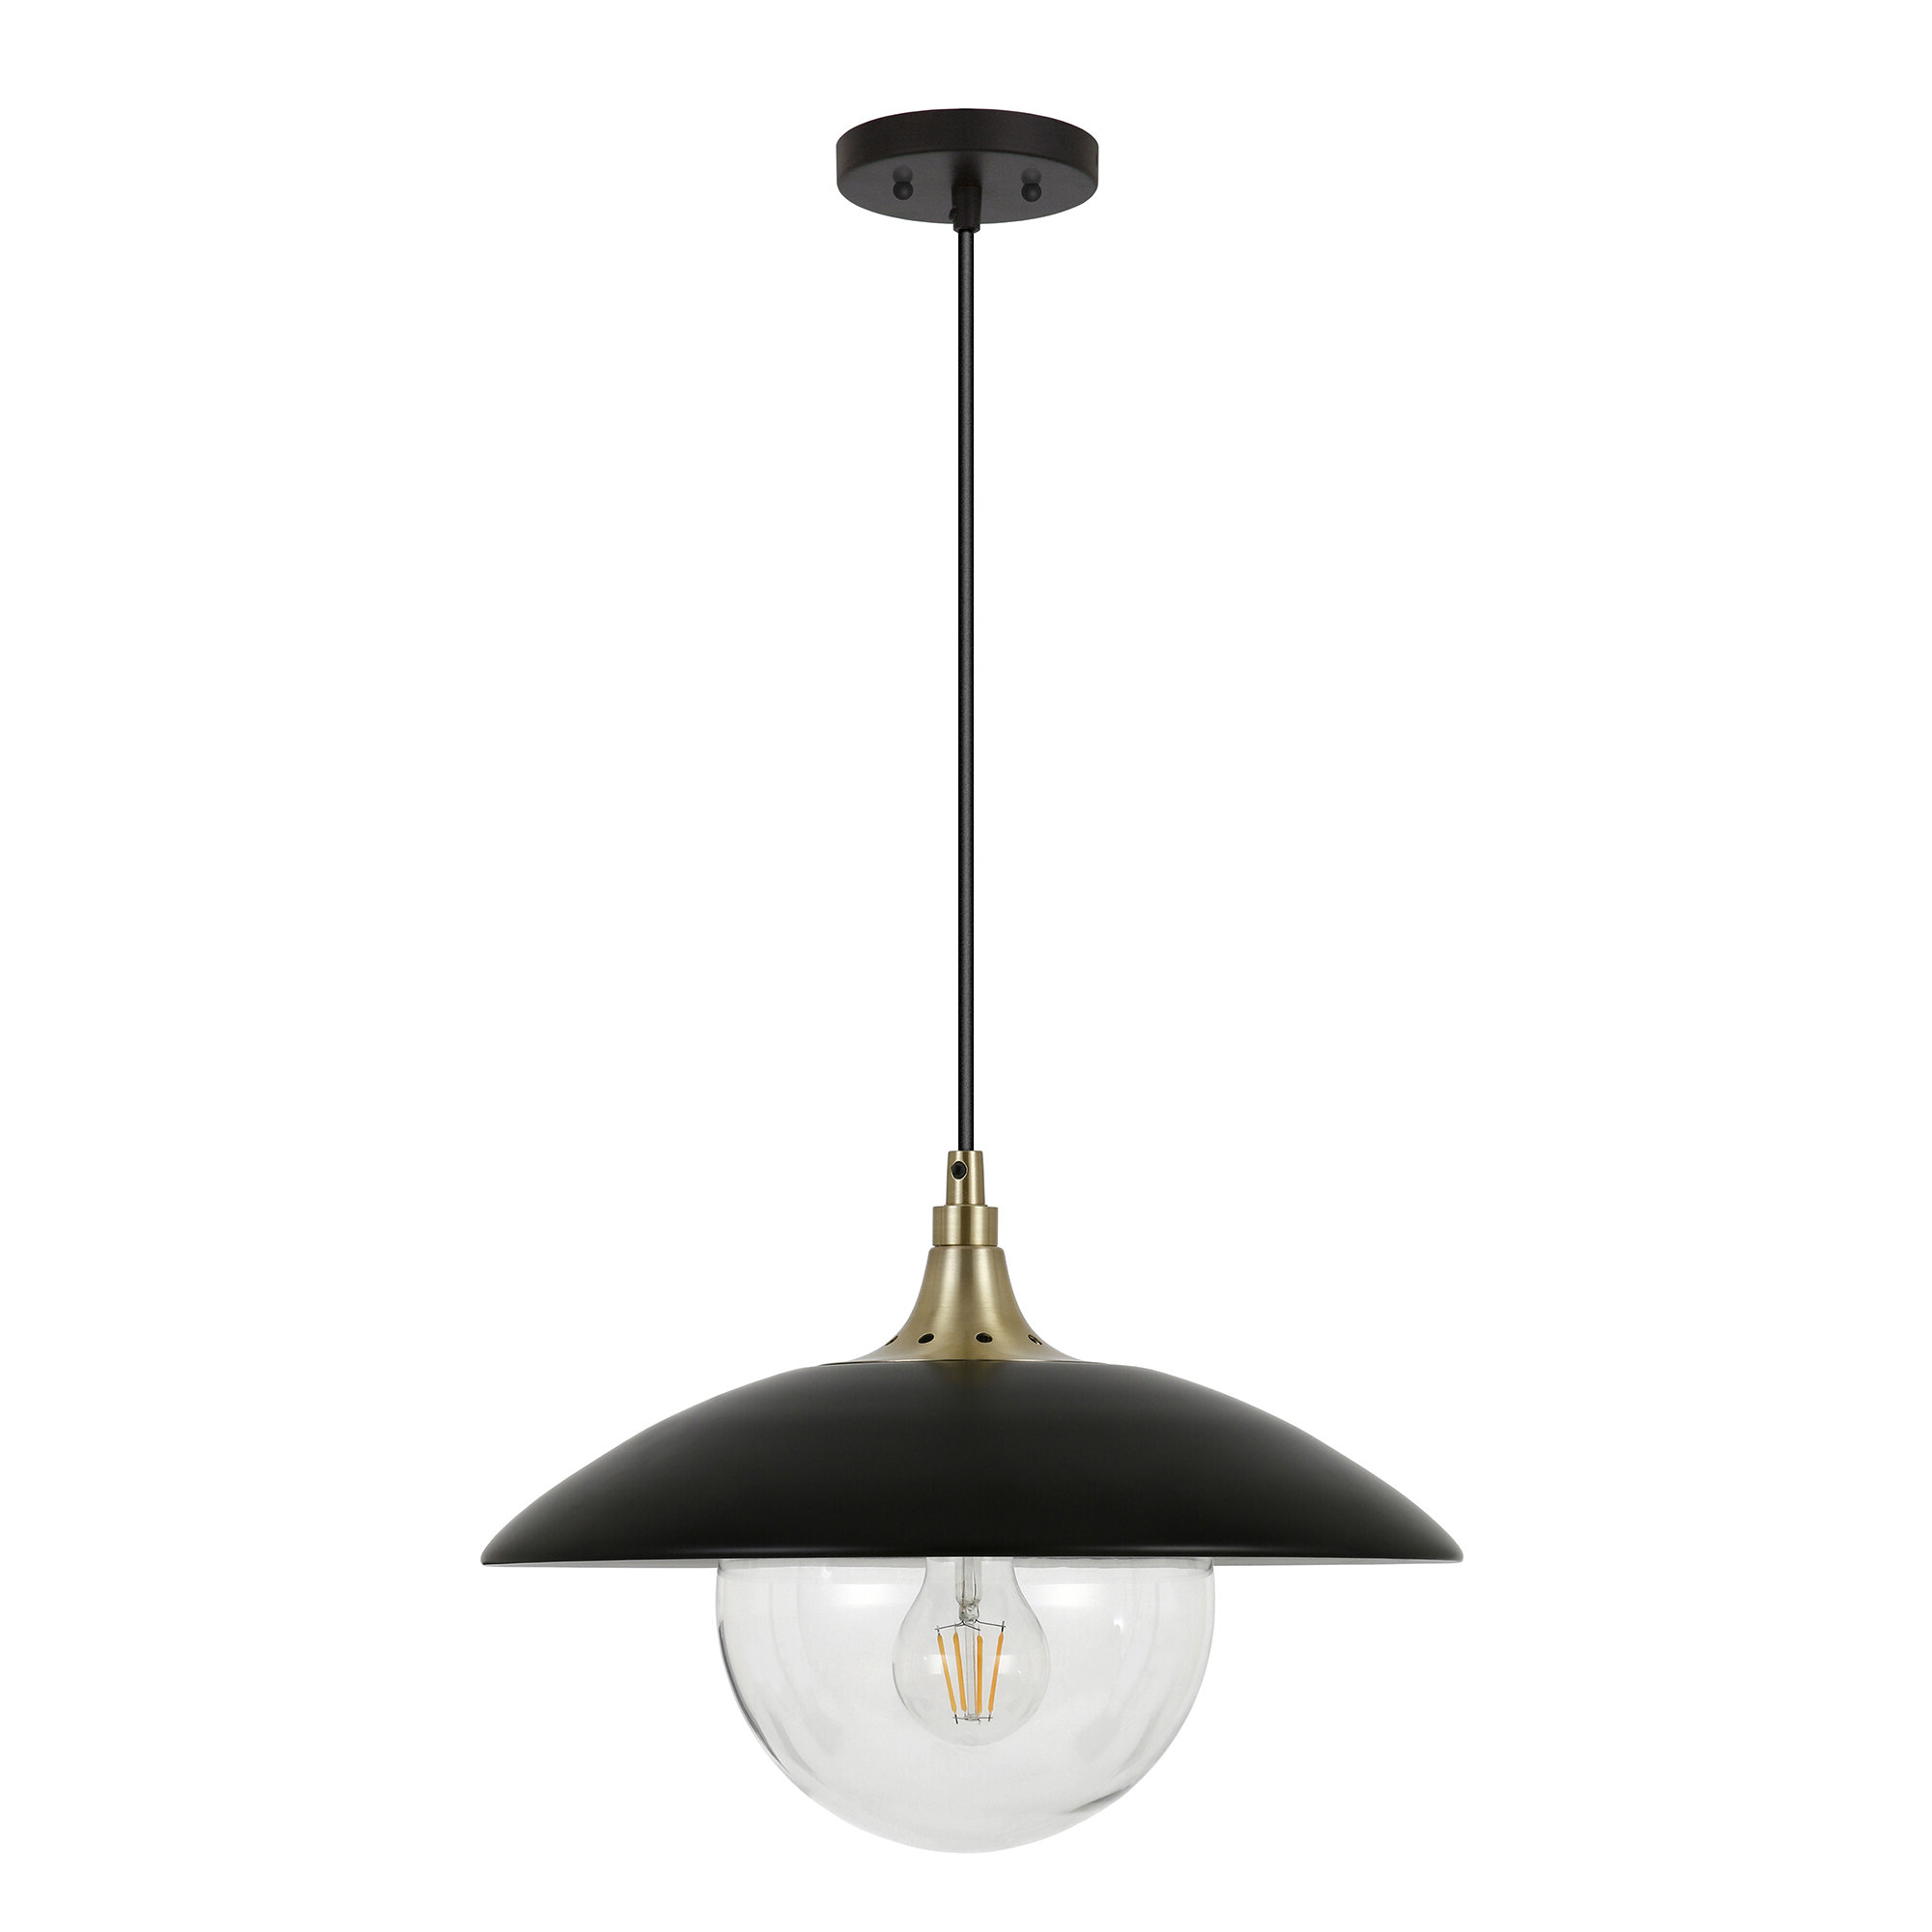 Famous Deveraux 1 Light Single Dome Pendant With Regard To Devereaux 1 Light Single Globe Pendants (View 2 of 20)